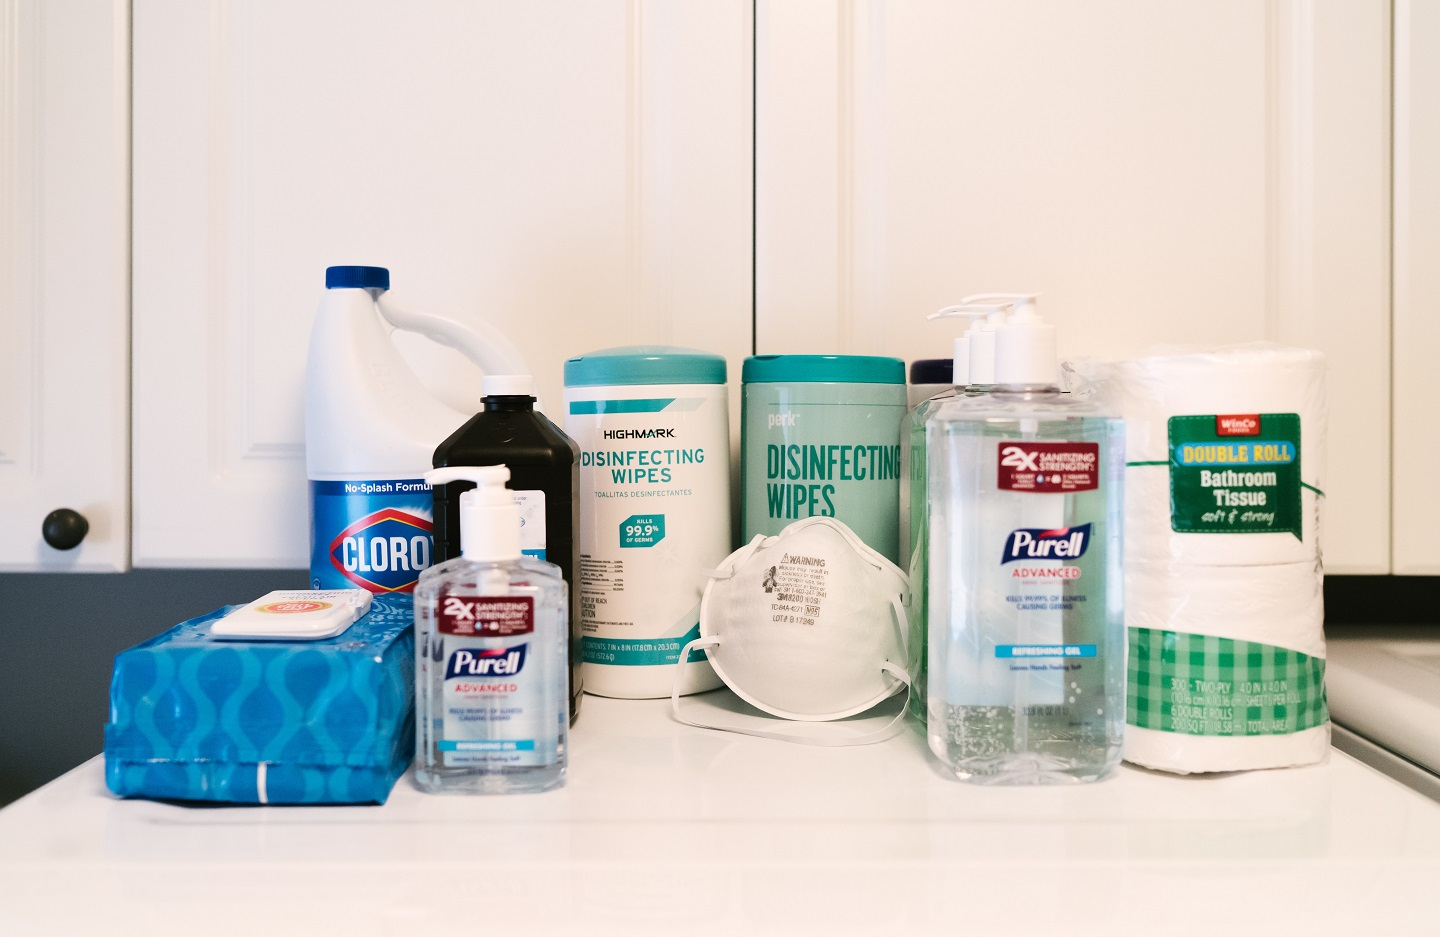 Napkins, disinfectant spray, face mask, and sanitizers on a table